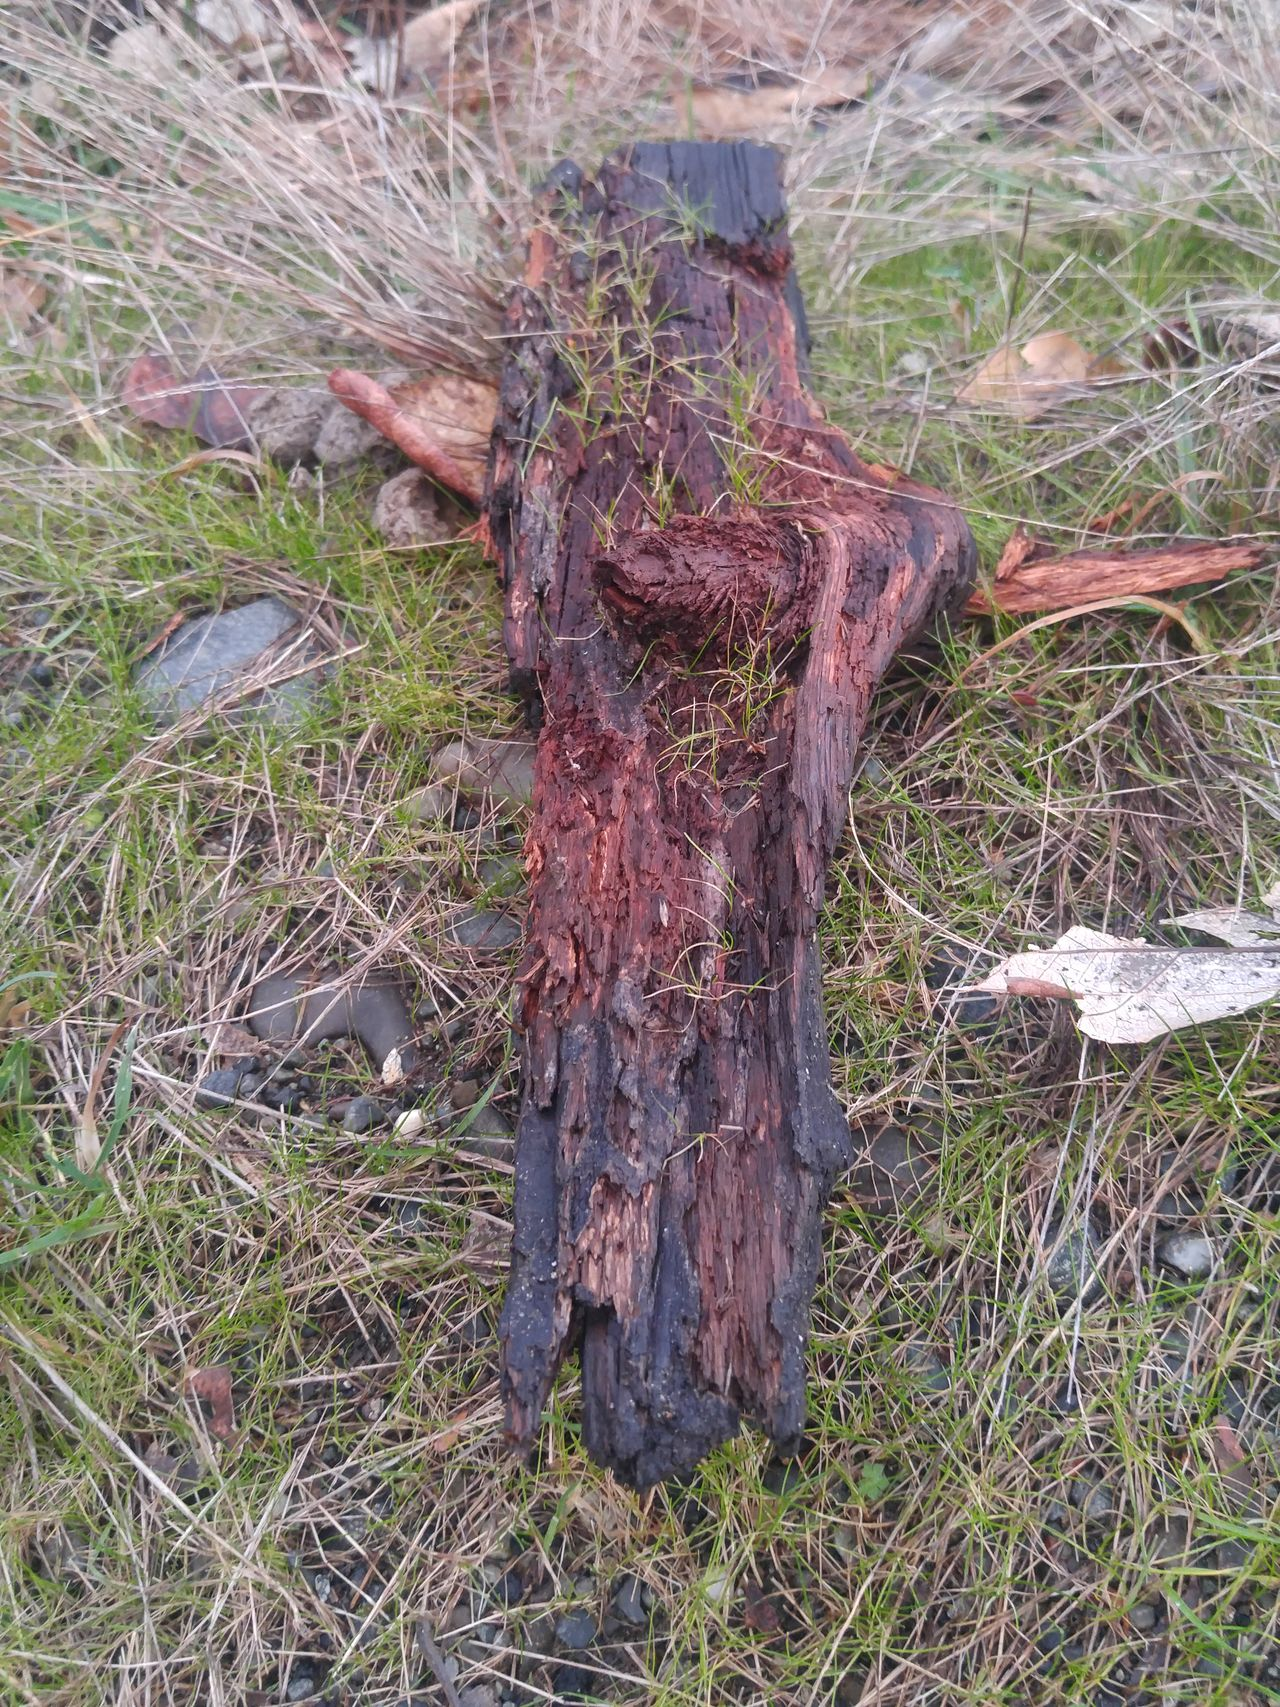 Unfiltered No People Nature Day Outdoors Treethugger Winter Enumclaw Tree Beauty In Nature Freshness